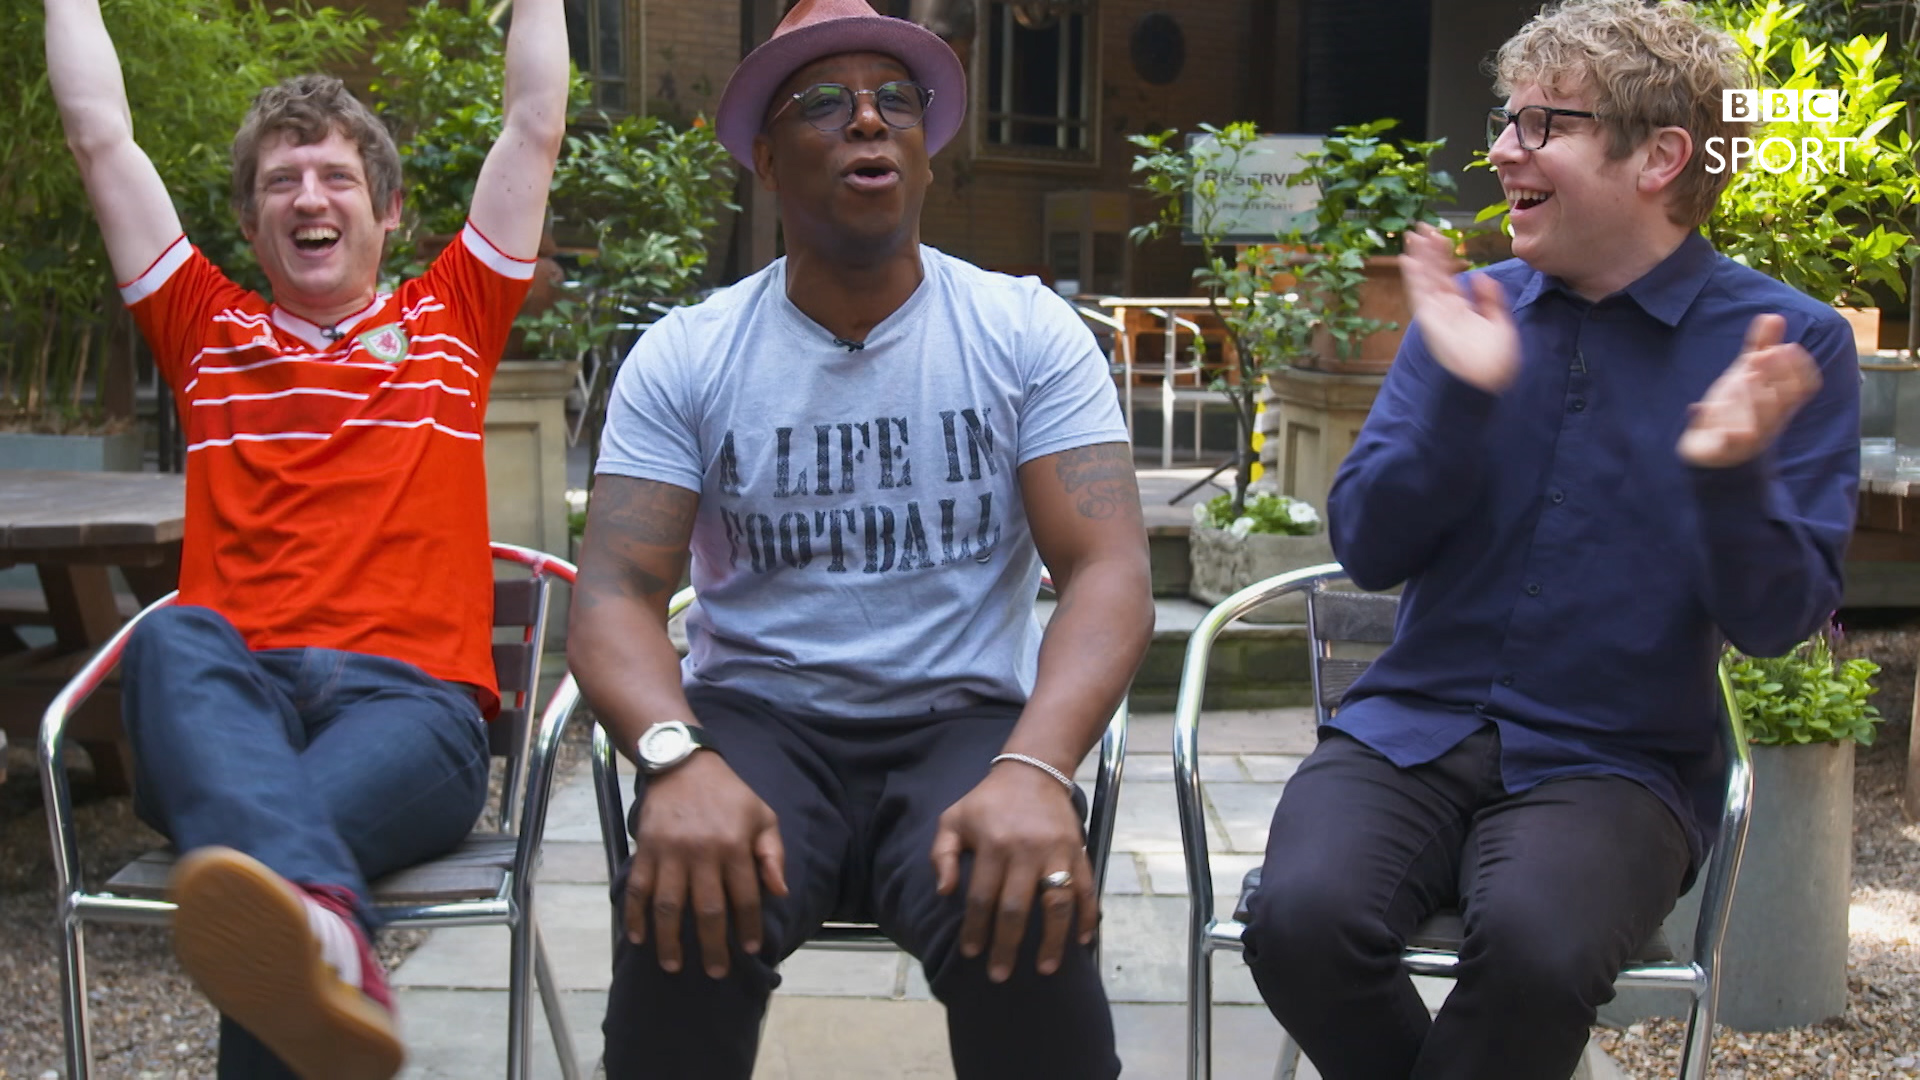 FA Cup: Ian Wright faces Elis James in FA Cup Line-up Jenga Thriller